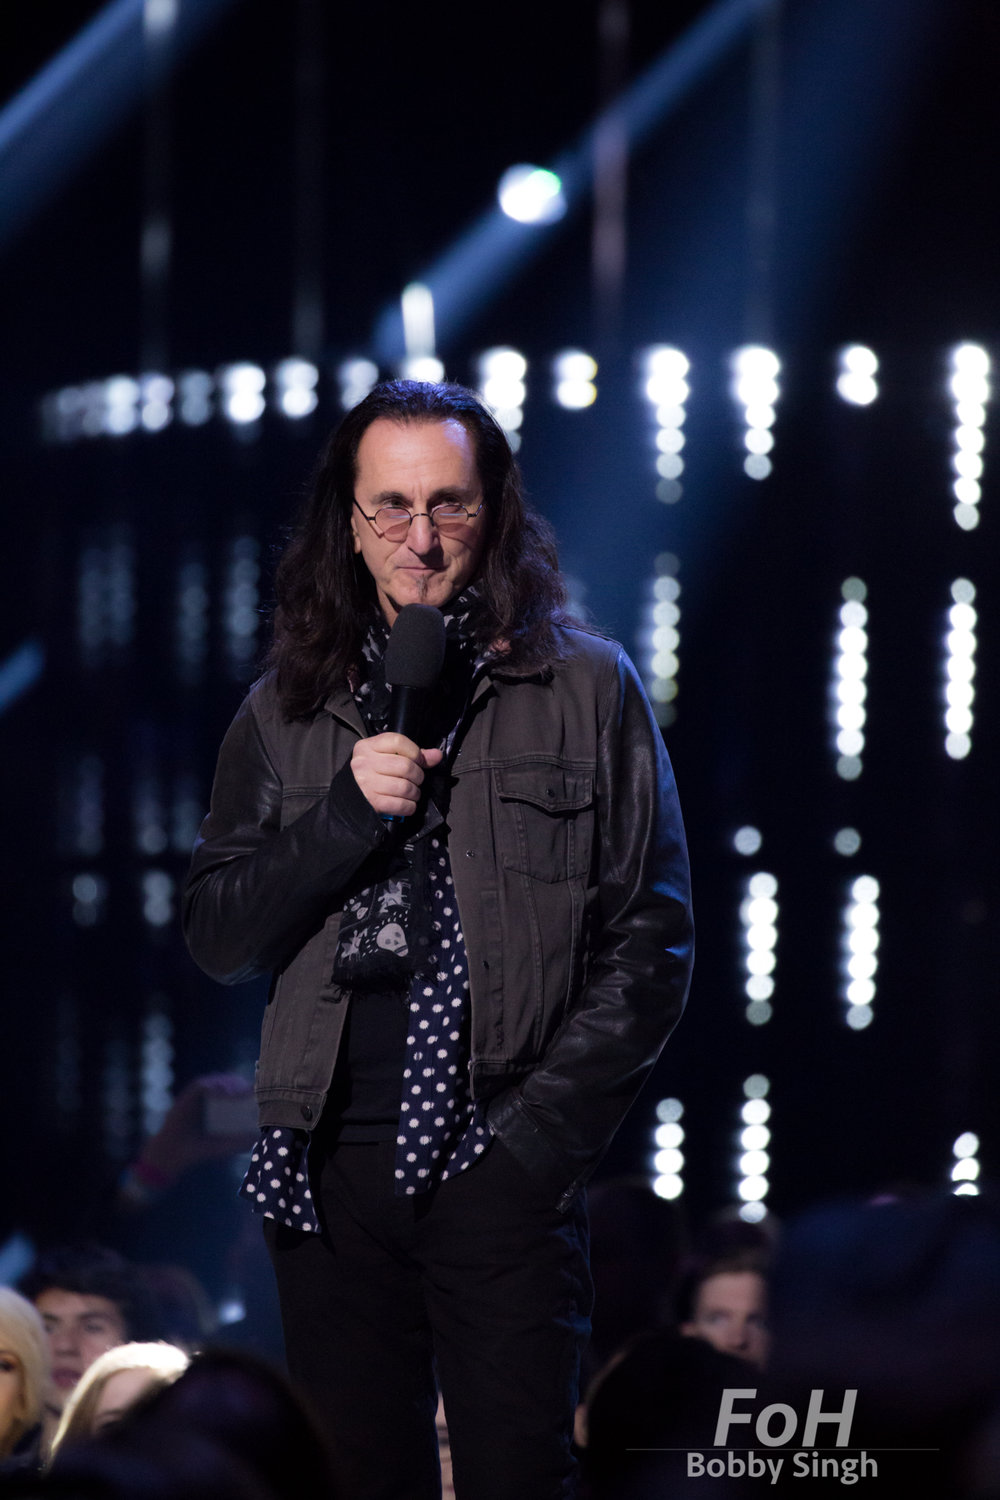 Vancouver, CANADA. 26th March, 2018. Lengendary Rush bassist and vocalist Geddy lee inducts Barenaked Ladies into the Canadian Music Hall of Fame at the 2018 Juno Awards in Vancouver. Credit: Bobby Singh/fohphoto